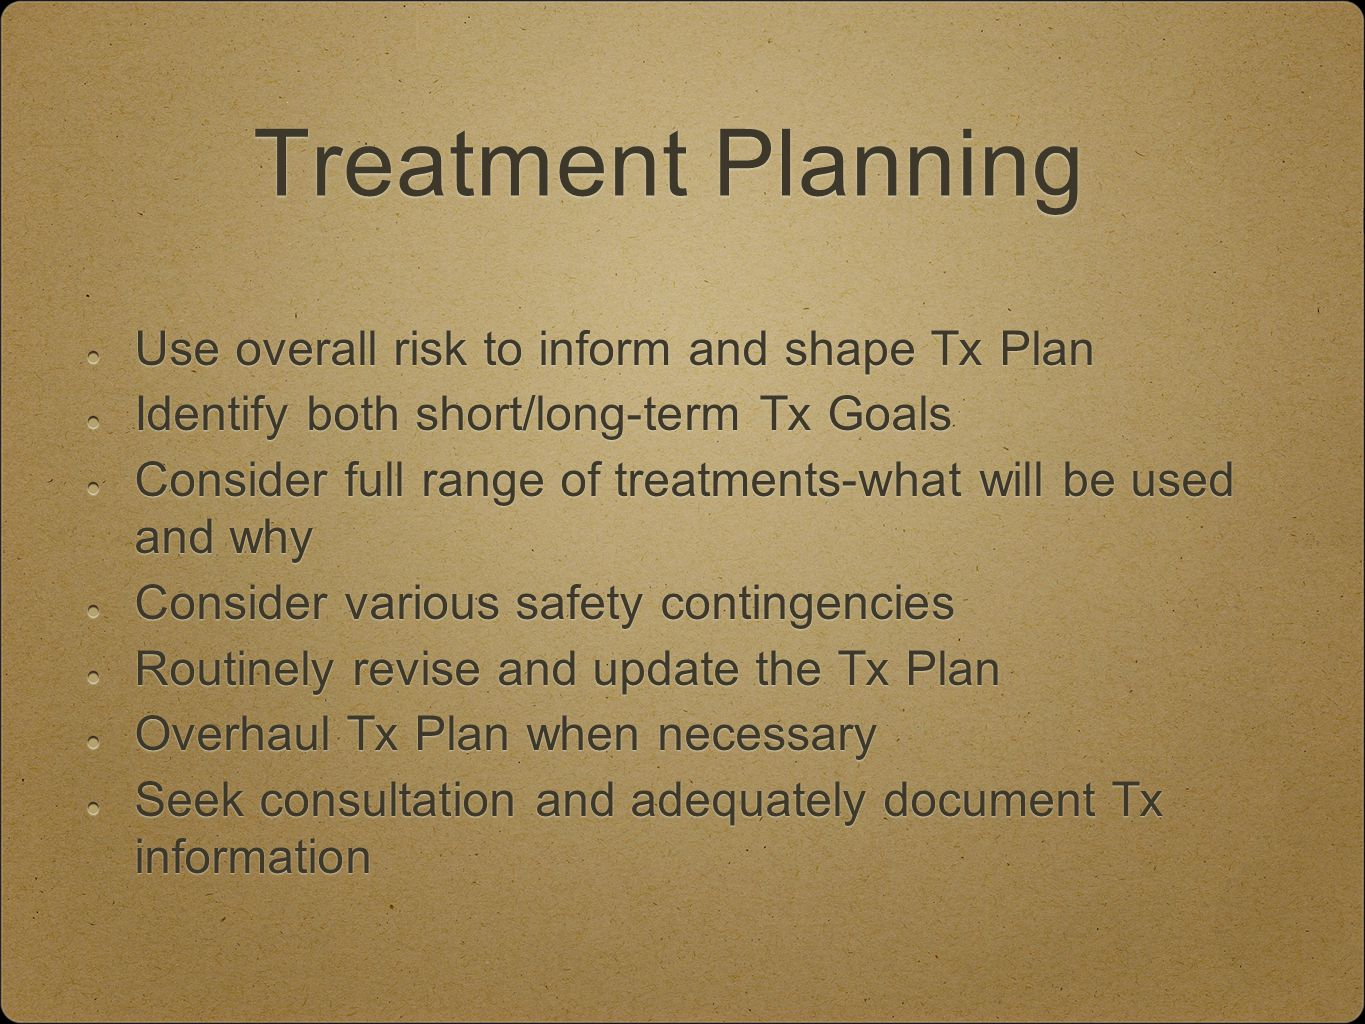 Treatment Planning Use overall risk to inform and shape Tx Plan Identify both short/long-term Tx Goals Consider full range of treatments-what will be used and why Consider various safety contingencies Routinely revise and update the Tx Plan Overhaul Tx Plan when necessary Seek consultation and adequately document Tx information